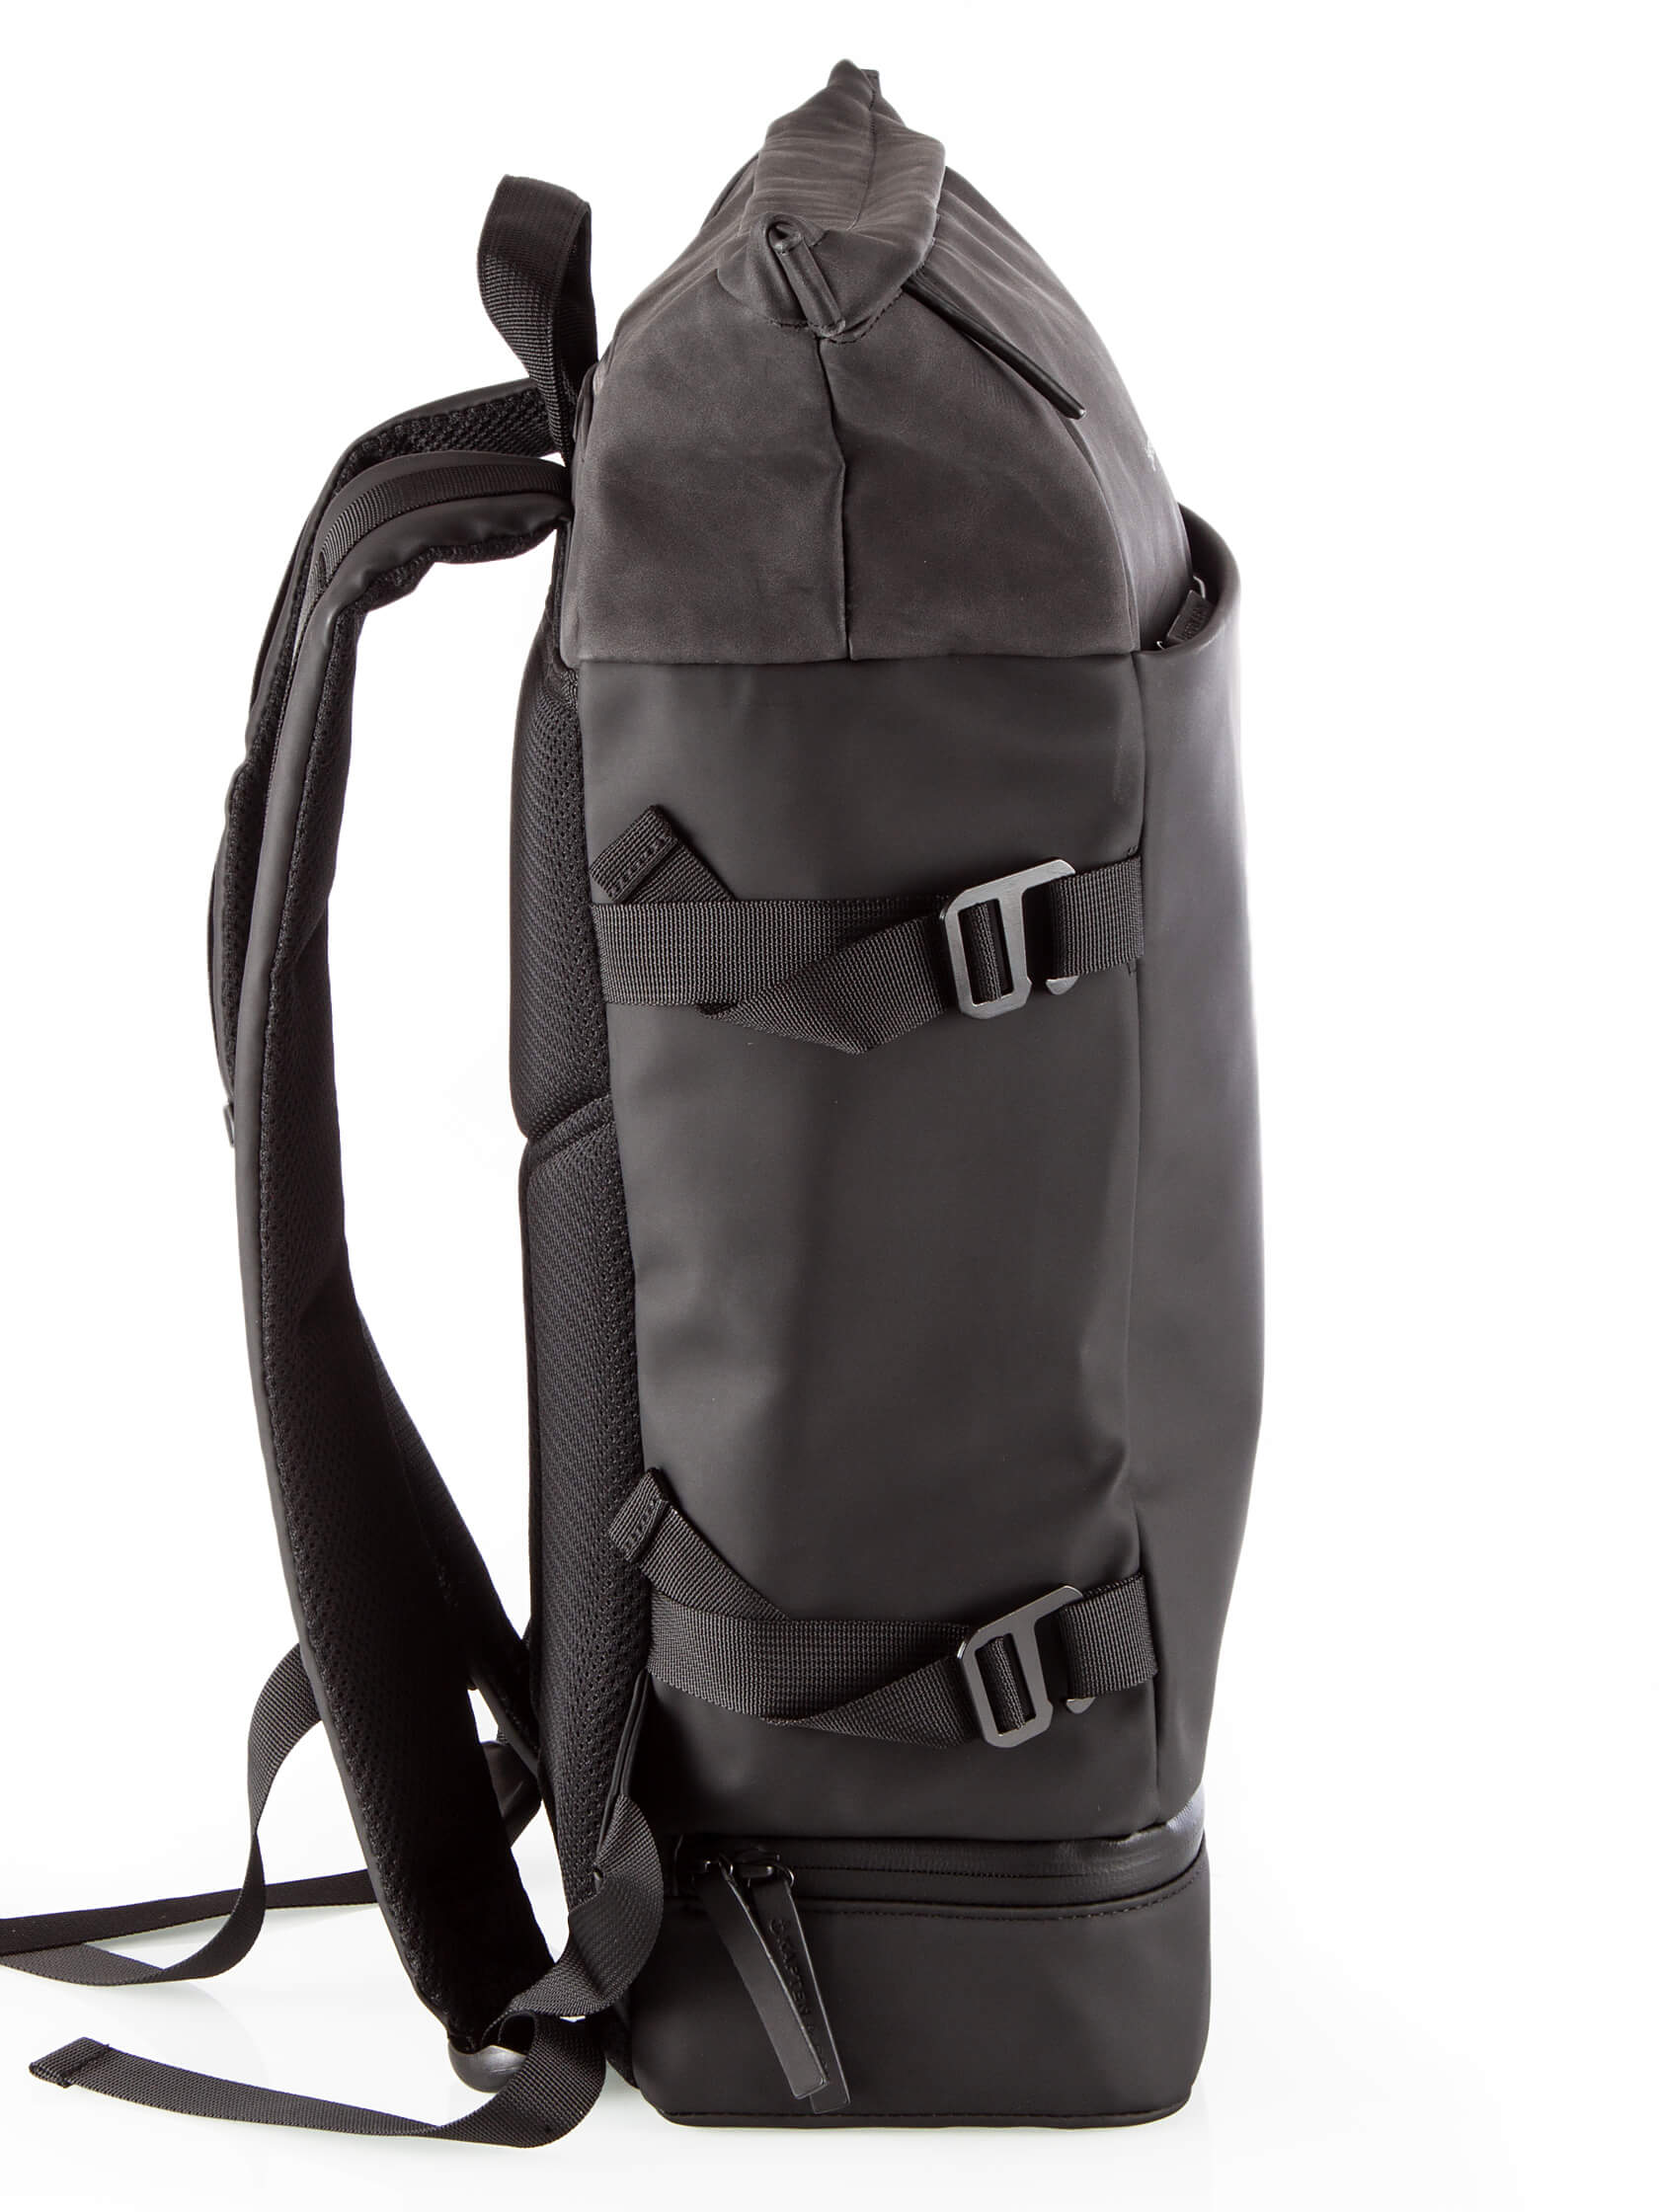 Kapten and son rucksack bergen